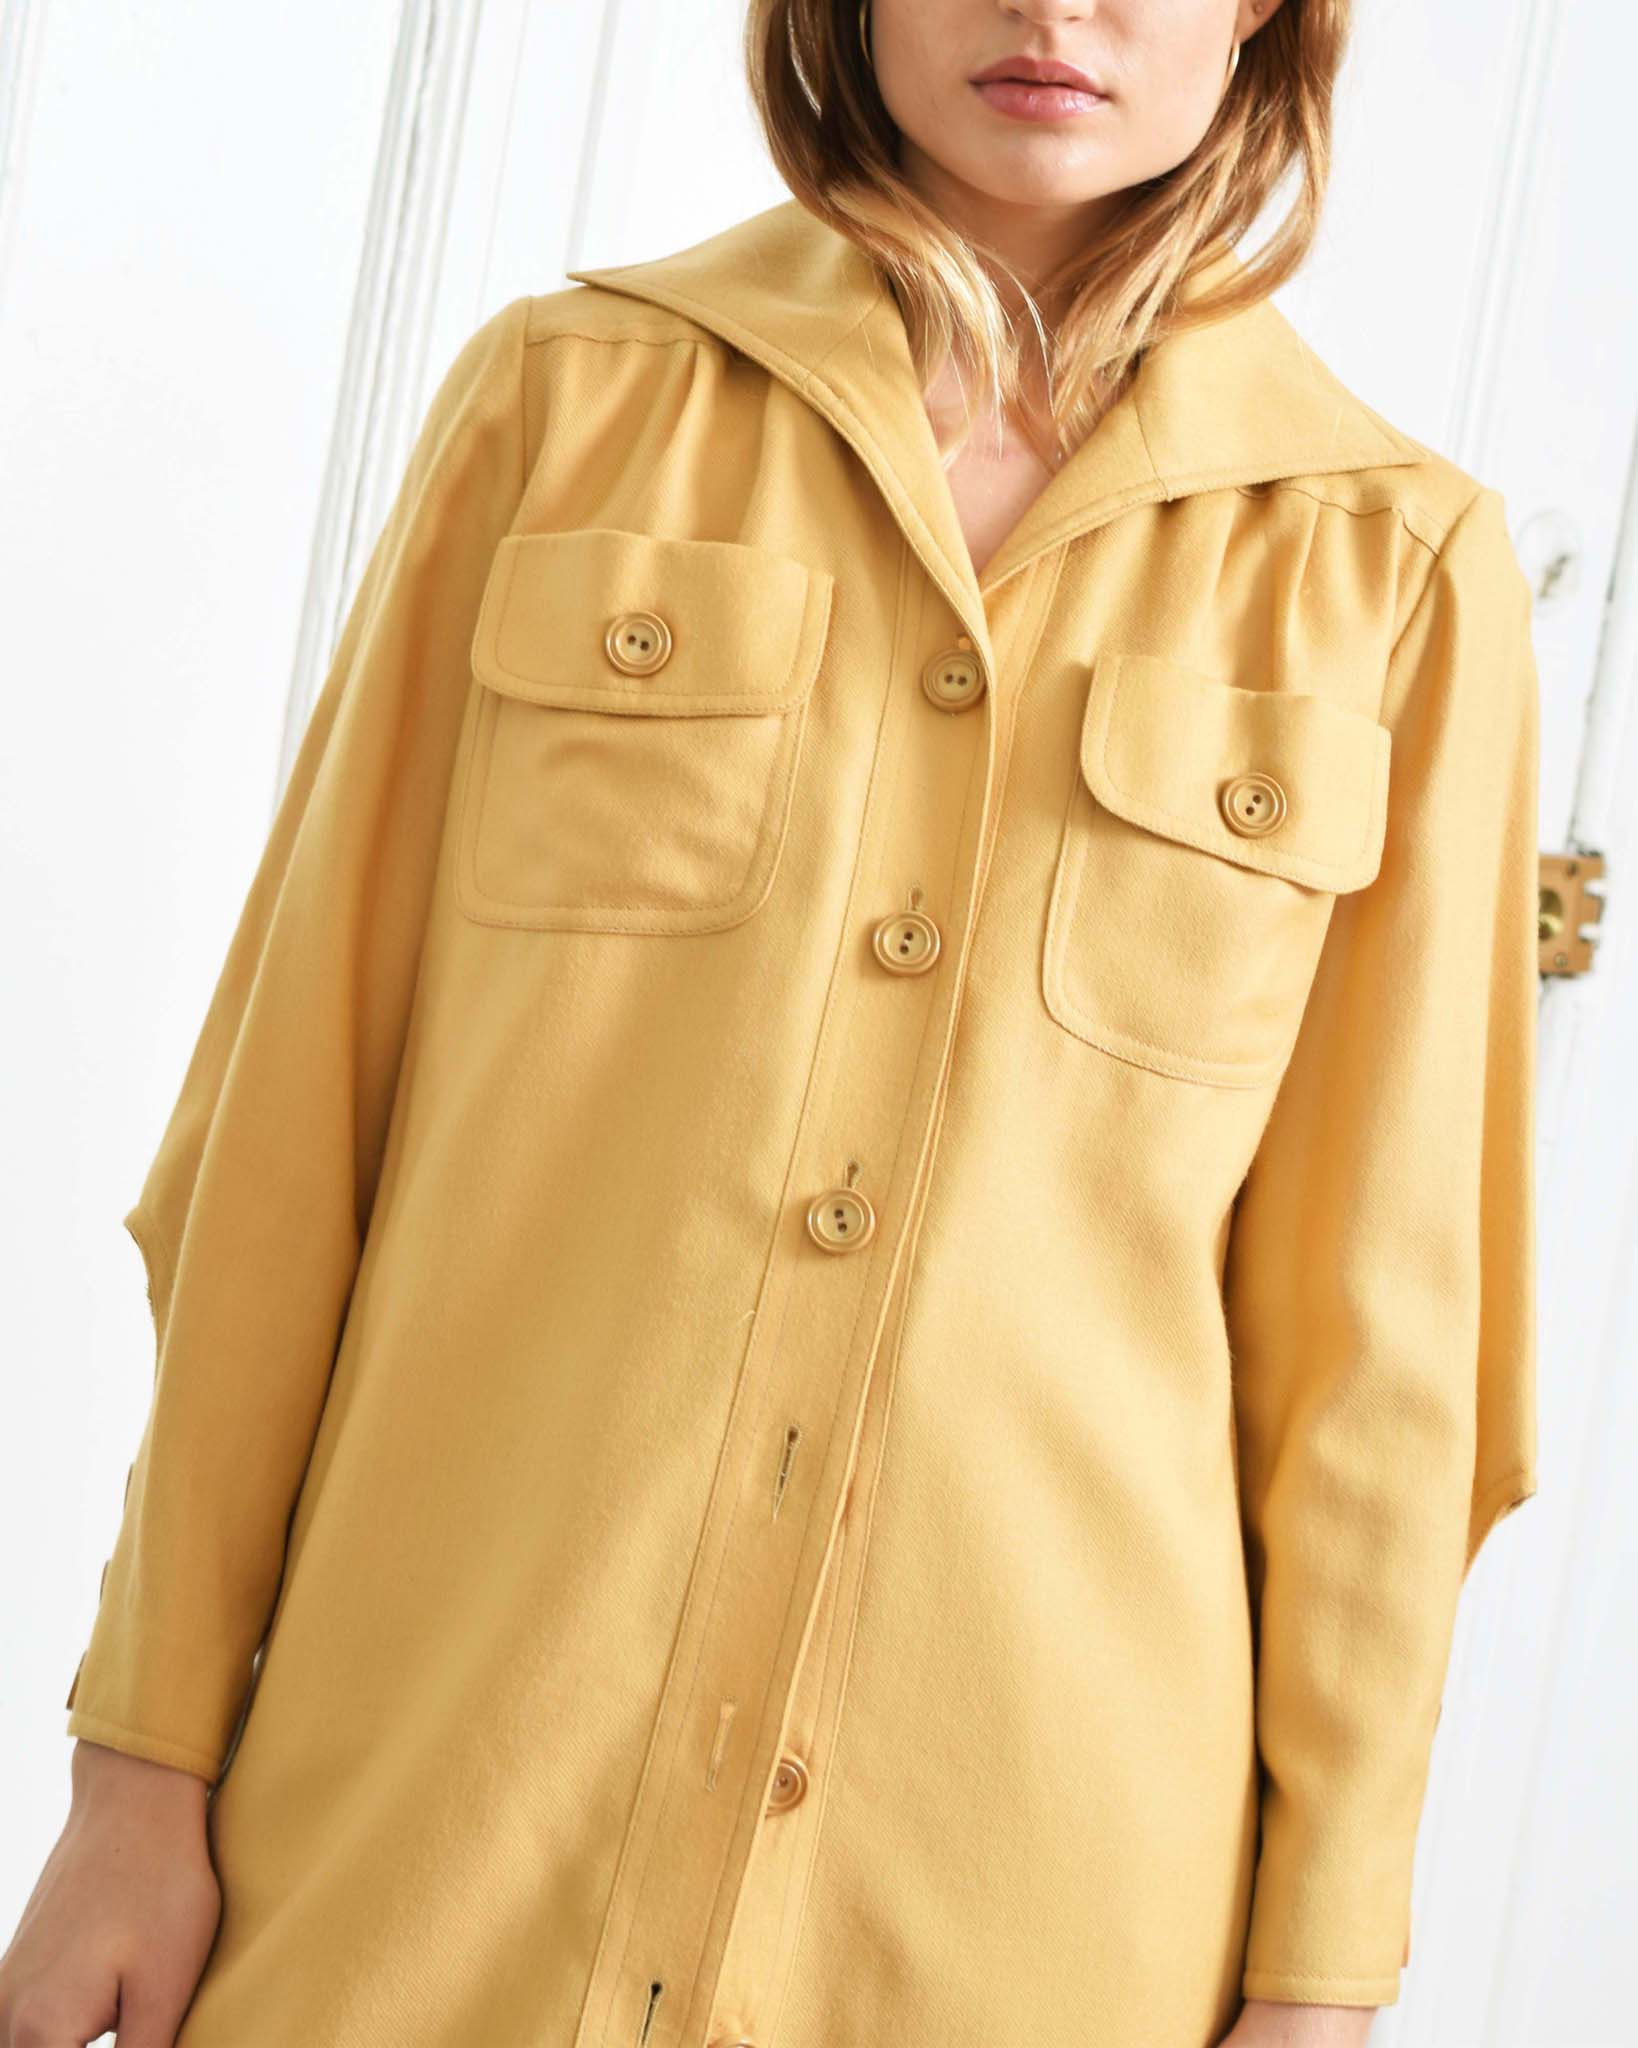 Vintage 1970s Camel Shirt Dress